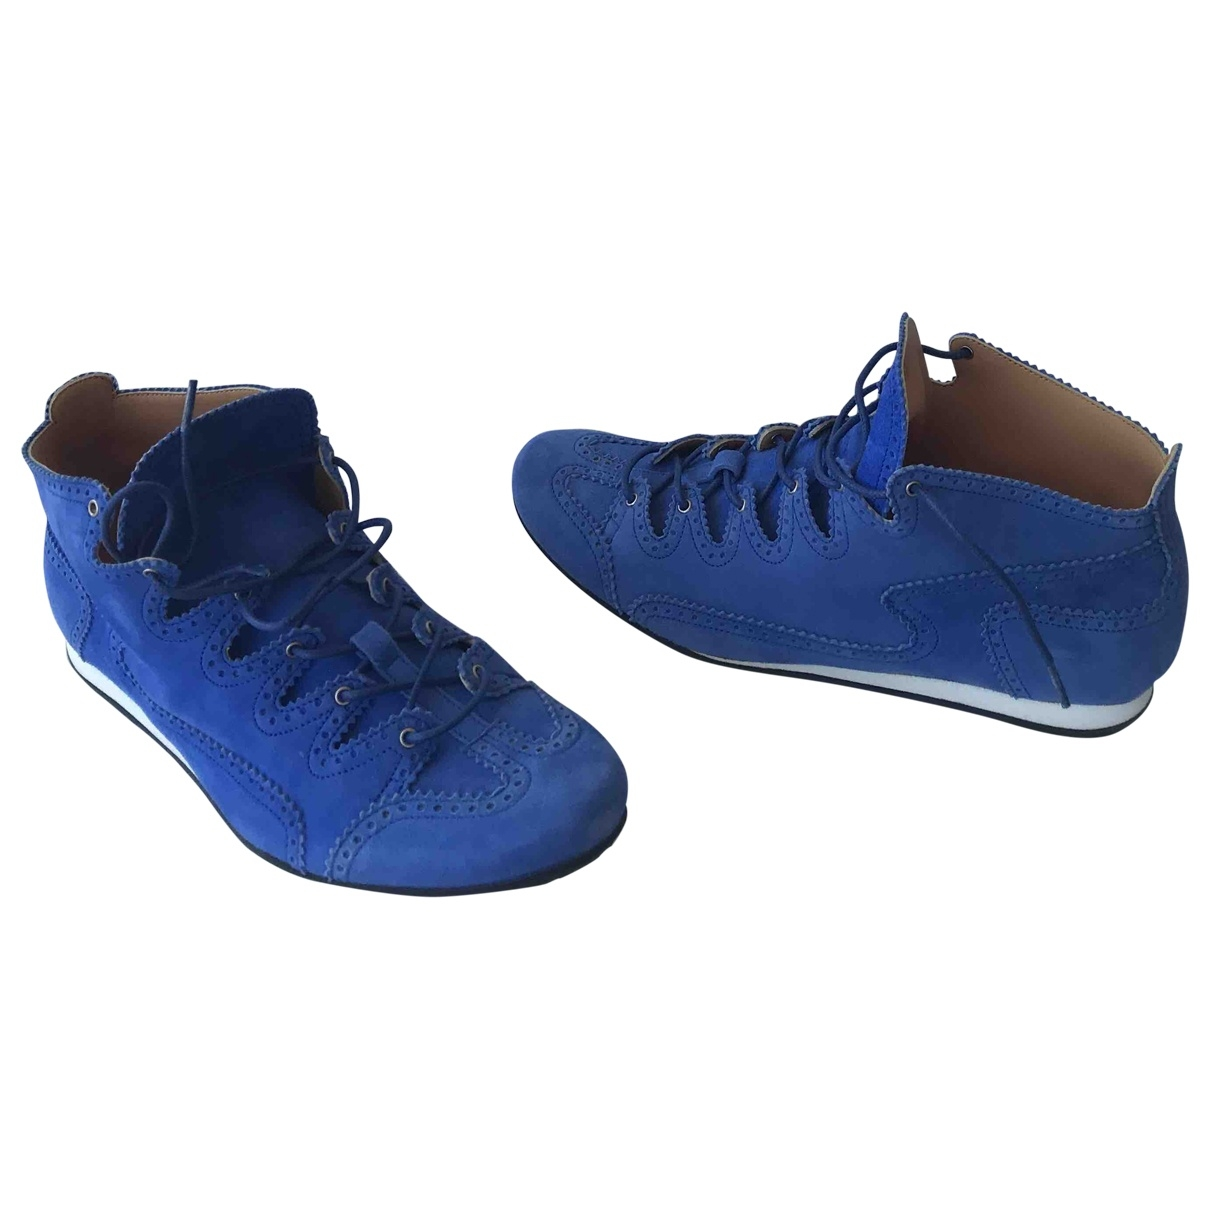 Hermès \N Turquoise Suede Trainers for Women 39 EU